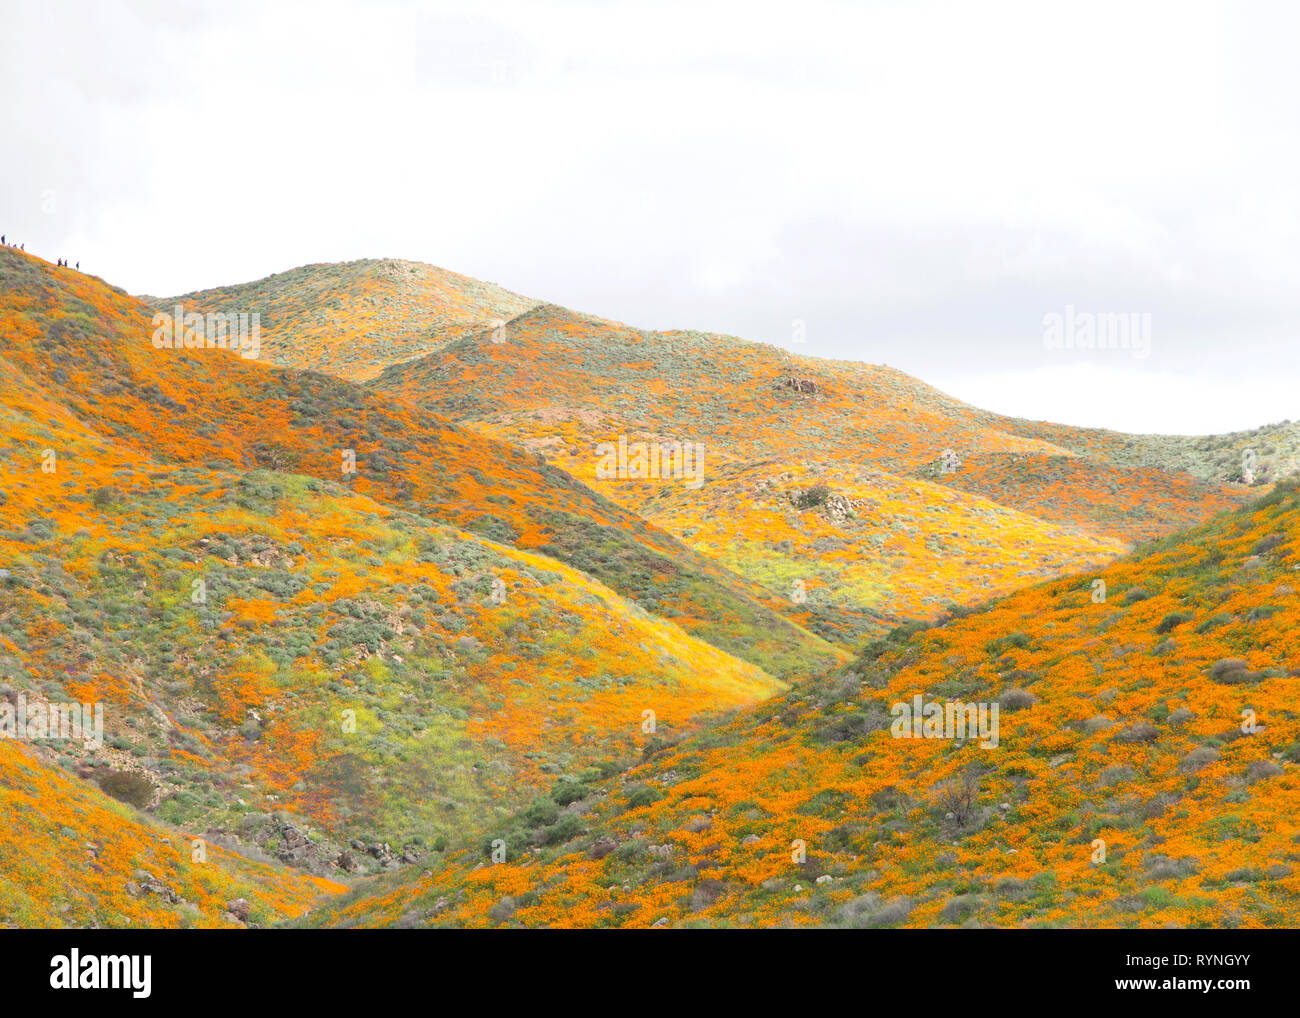 View of the hills along Walker Canyon in Lake Elsinore, Southern California exploding in orange poppy flowers, cloudy skies above. Super bloom. - Stock Image